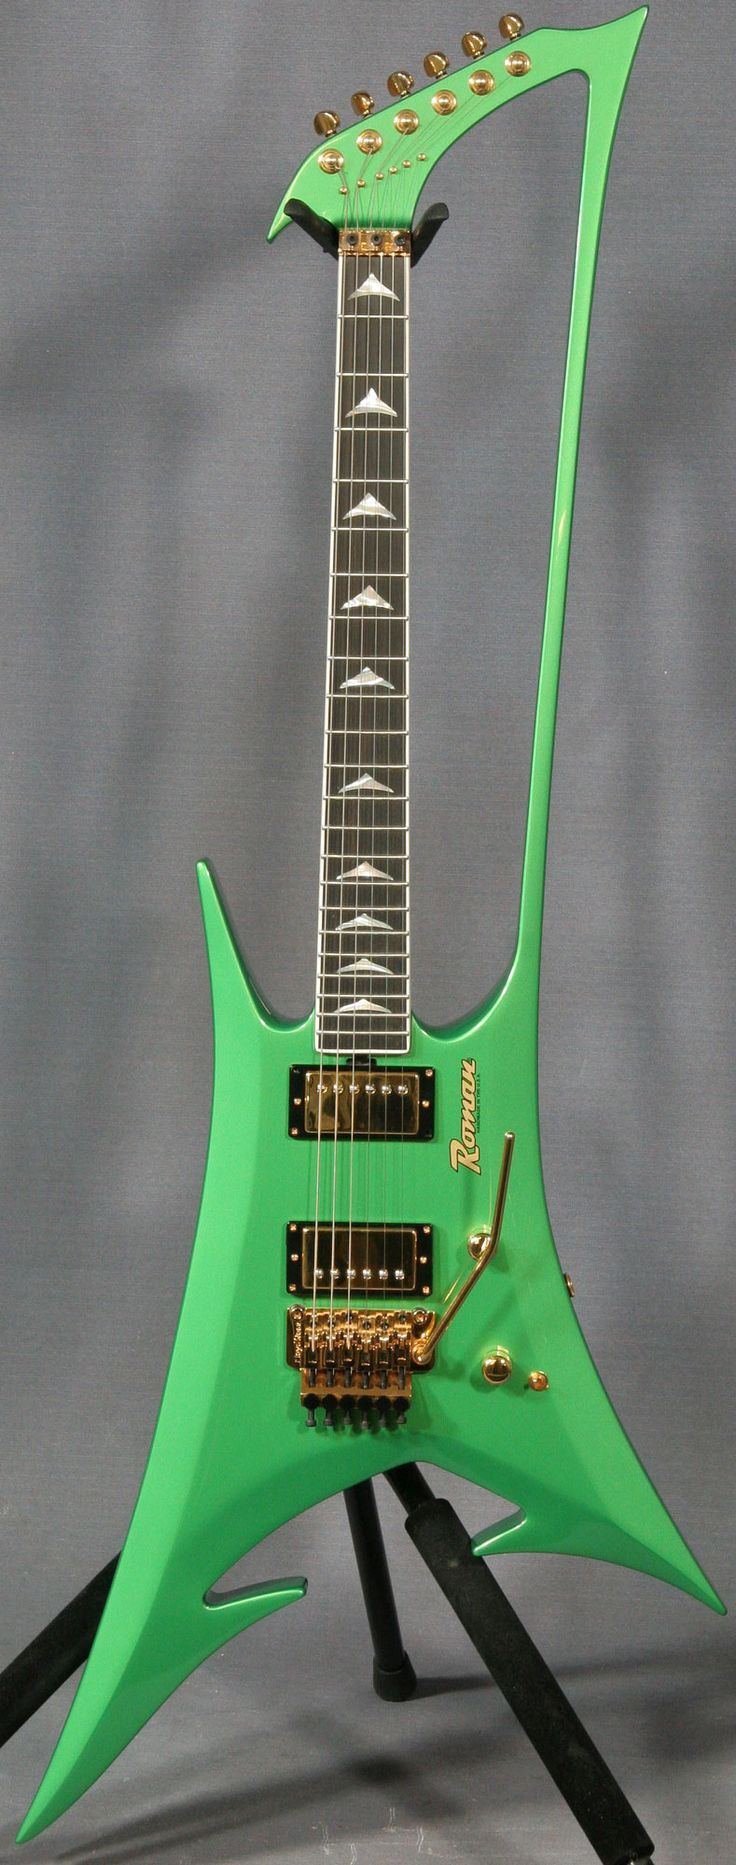 guitars for sale | Abstract Enterprize Guitar - Ed Roman Guitars